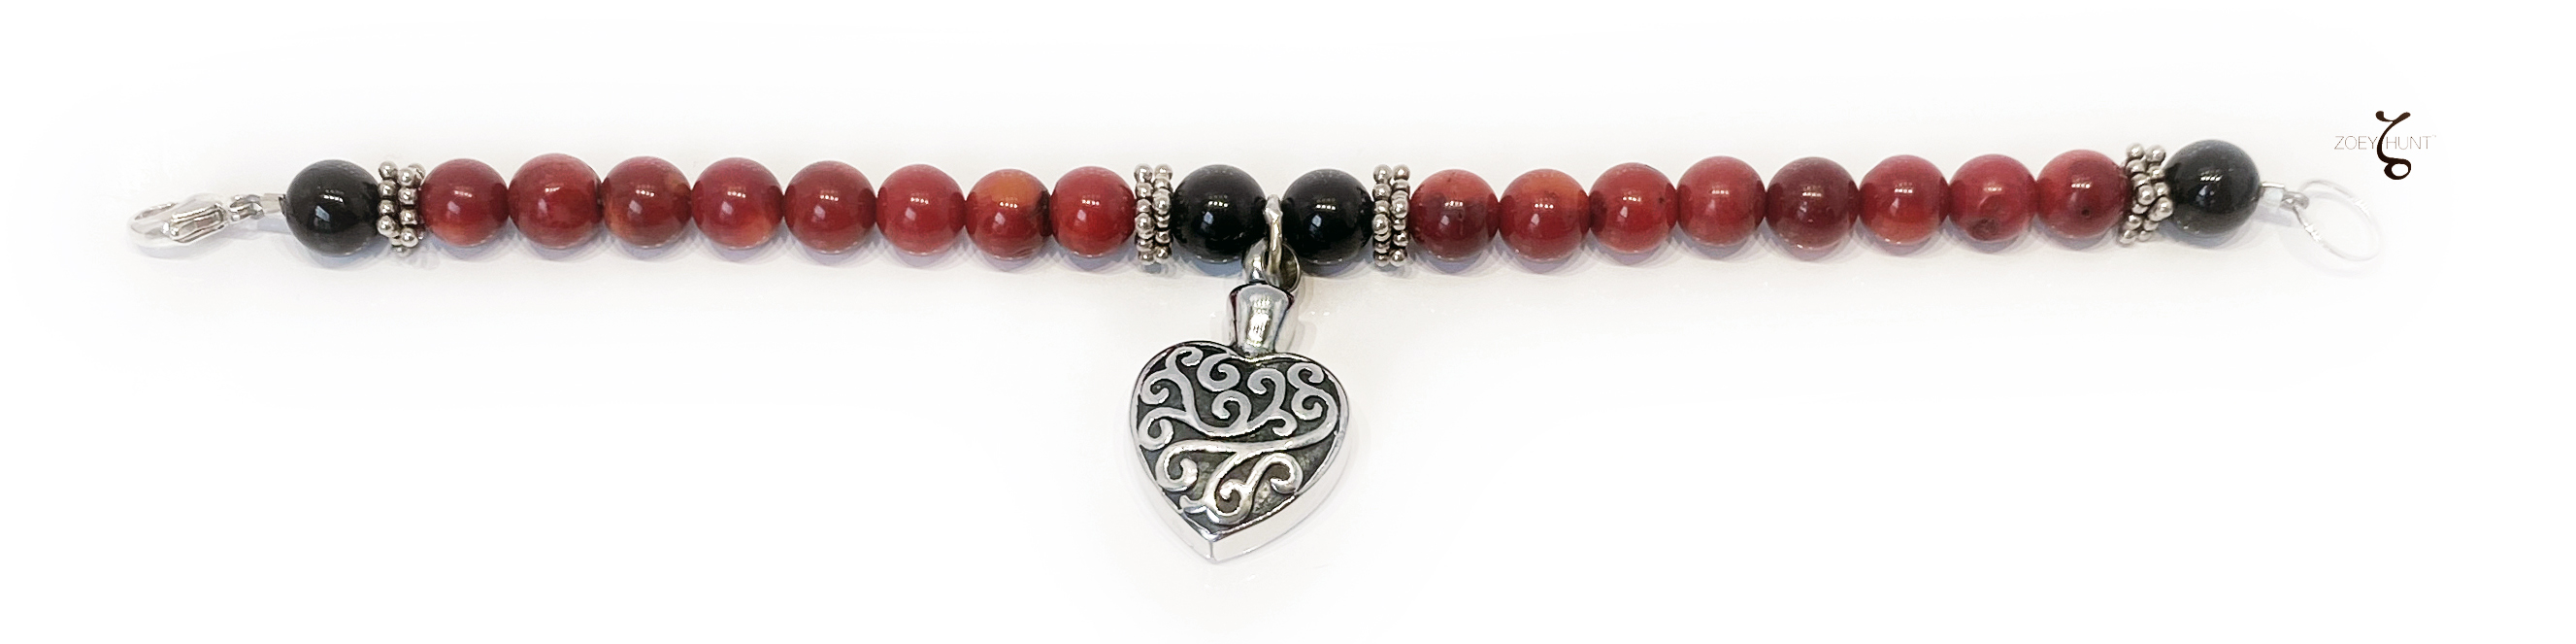 Red Coral Goth Bracelet with Black Onyx Beads and a Heart for Ashes